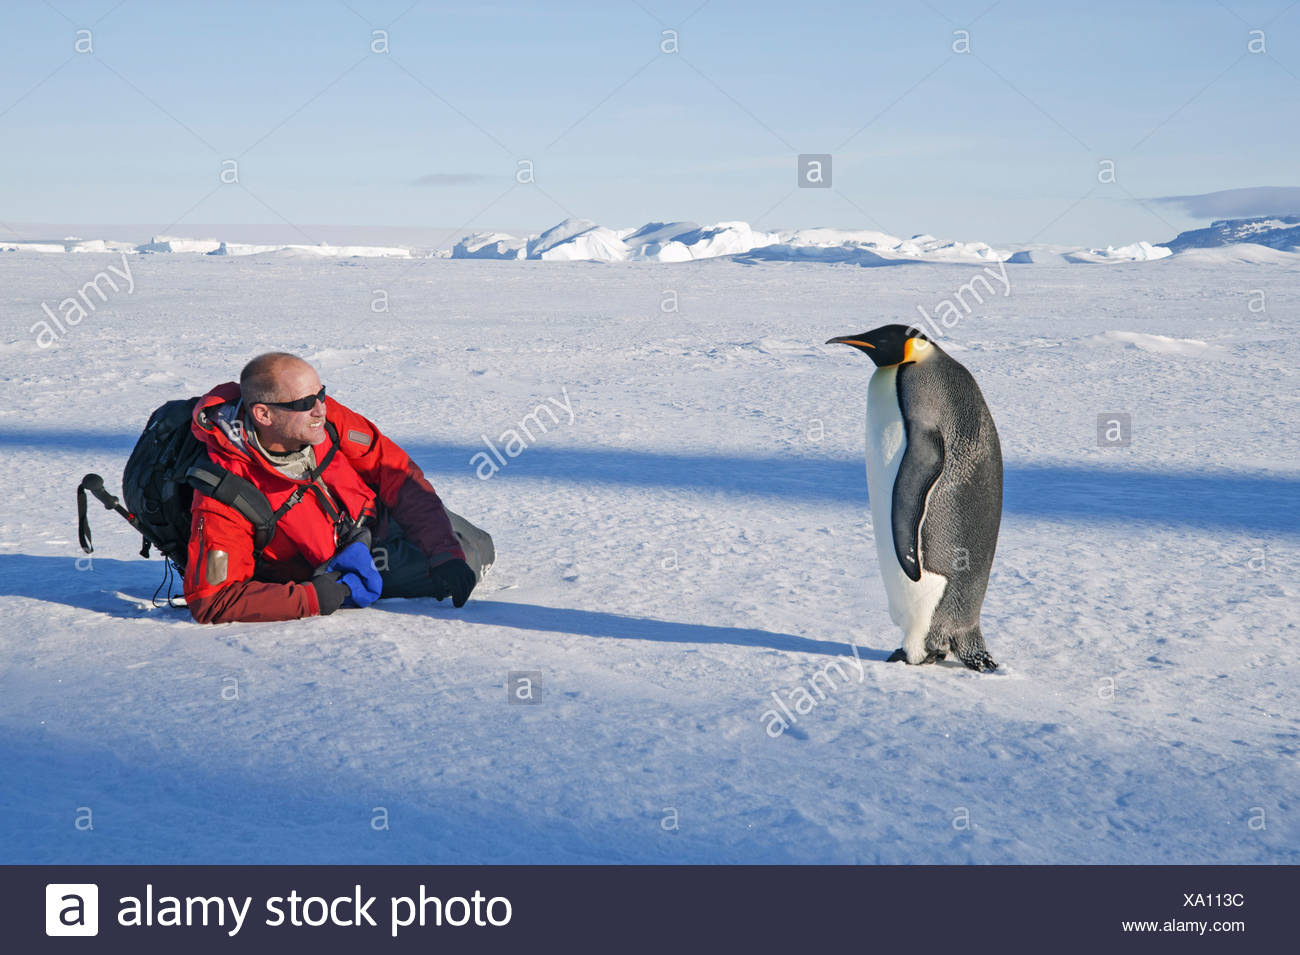 A man lying on his side on the ice close to an emperor penguin standing motionless - Stock Image